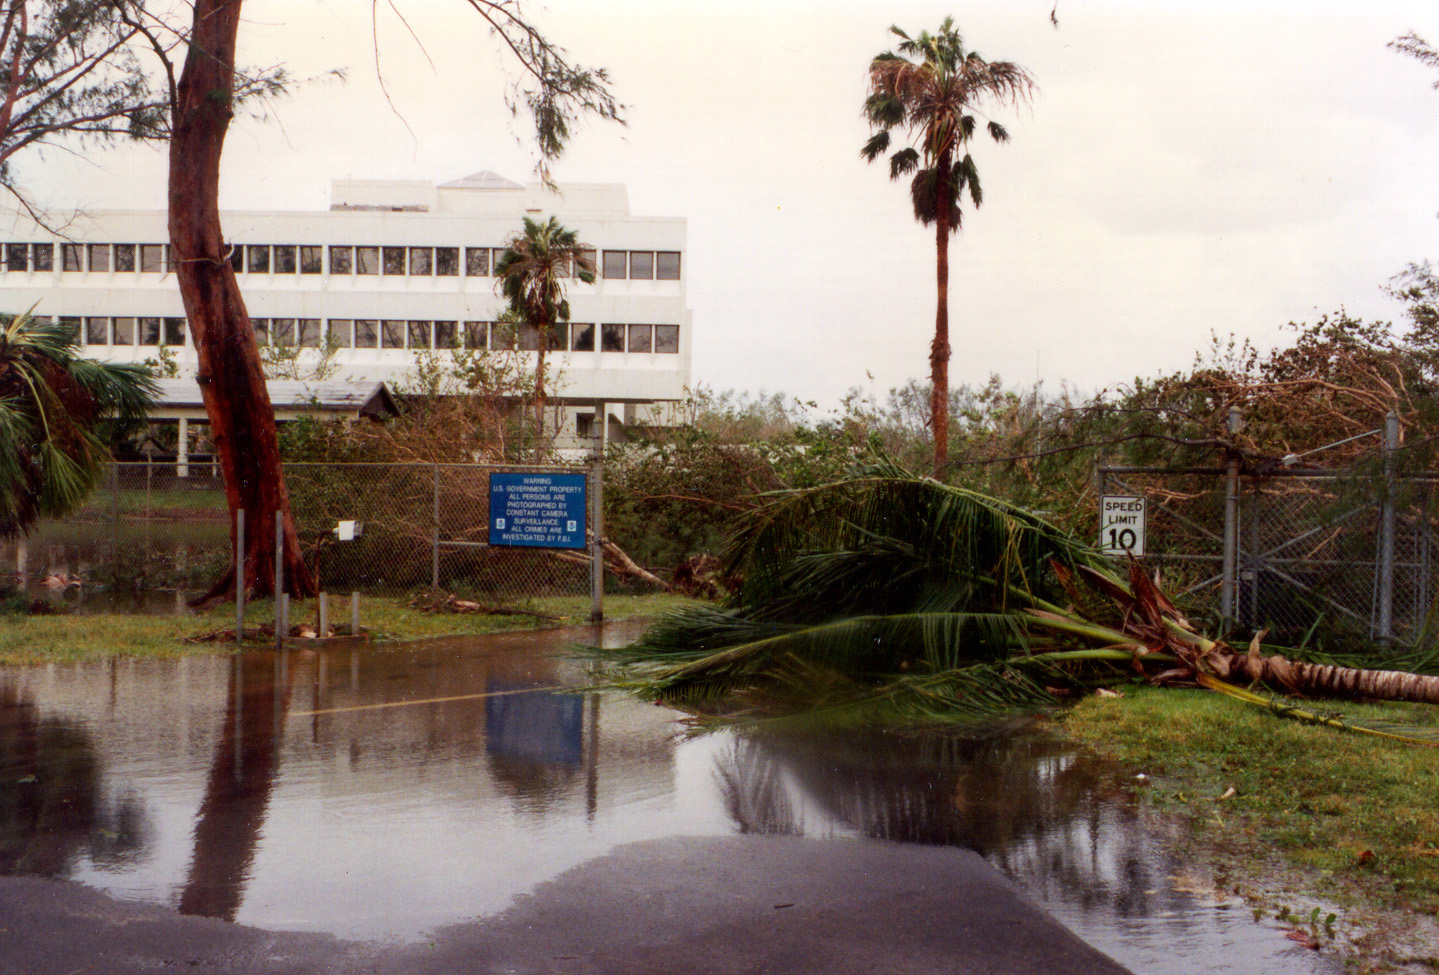 Hurricane Andrew aftermath at the NOAA Atlantic Oceanographic and Meteorological Laboratory. Image credit: NOAA